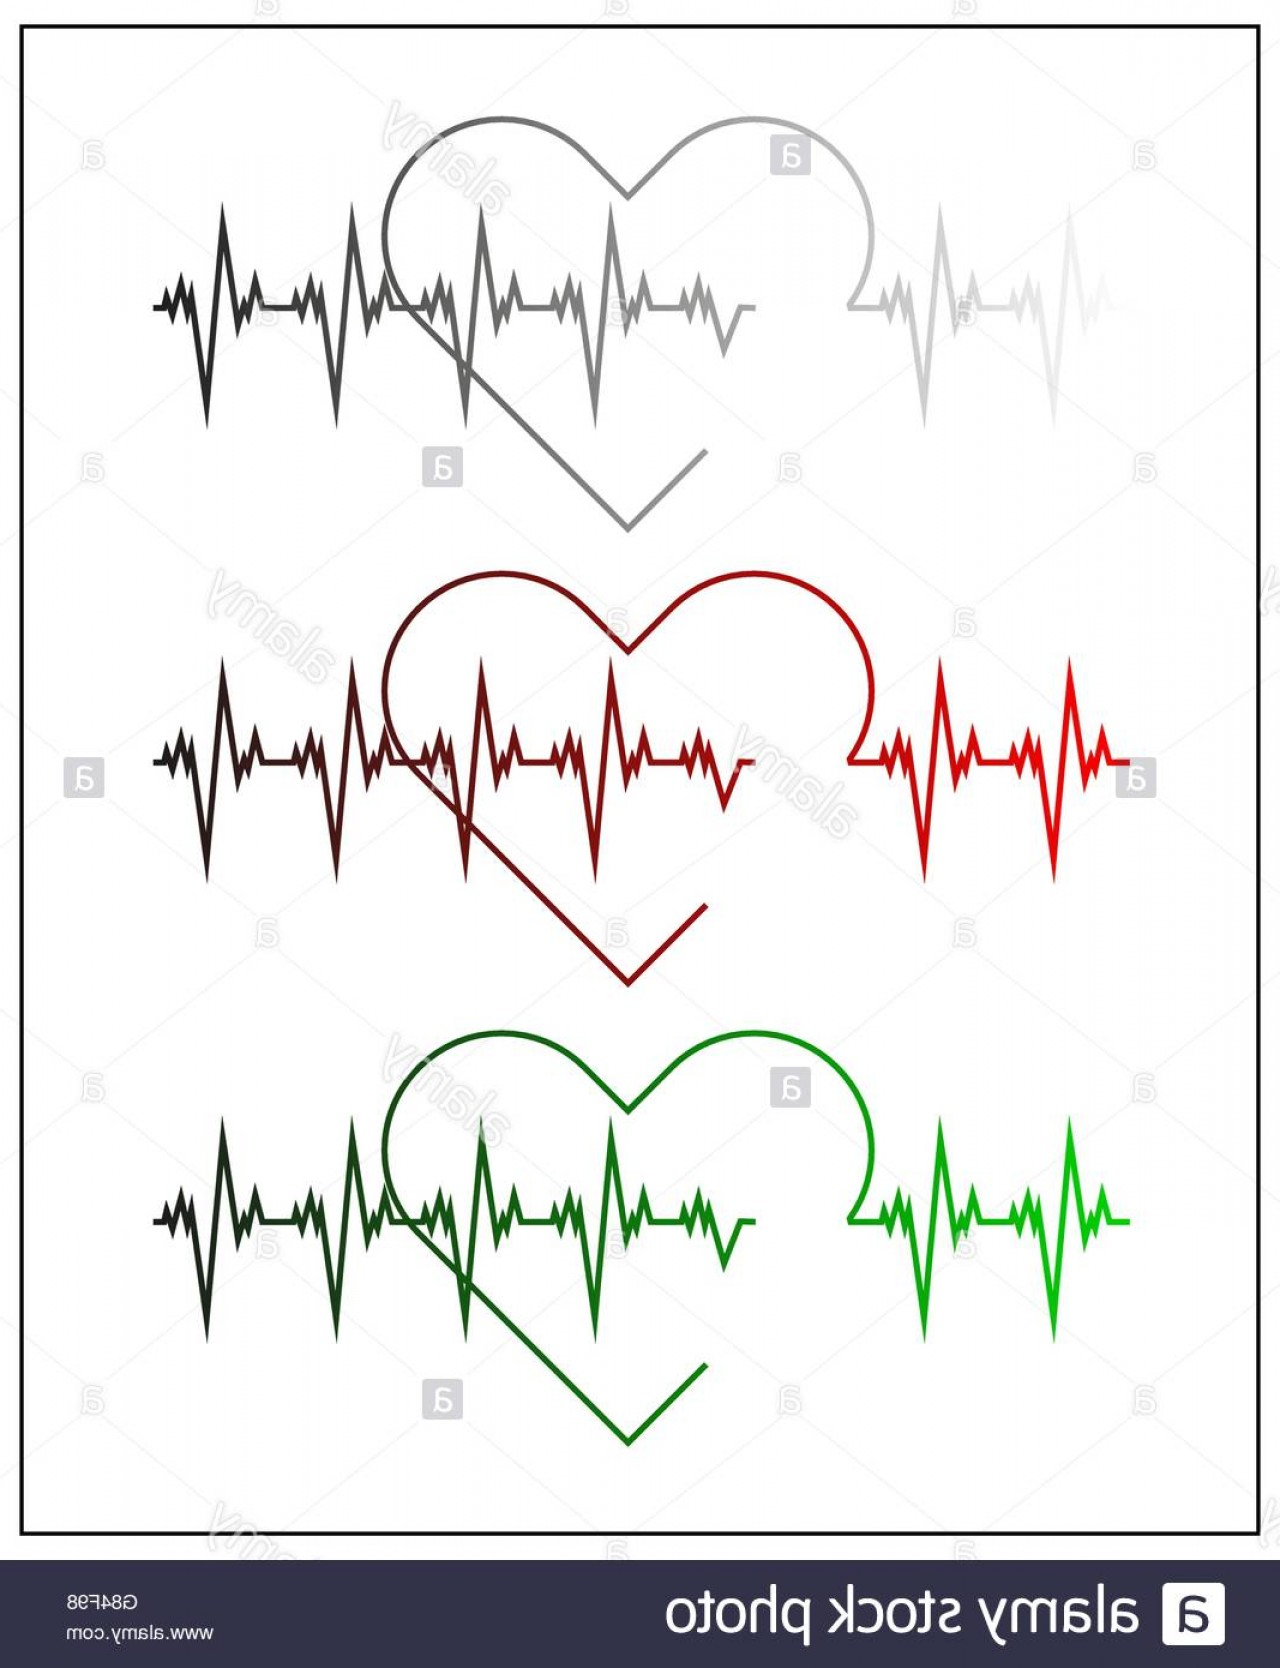 Heart Stethoscope With EKG Lines Vector: Stock Photo Graphic Illustration Of Cardiogram Or Cardiograph Electrocardiogram